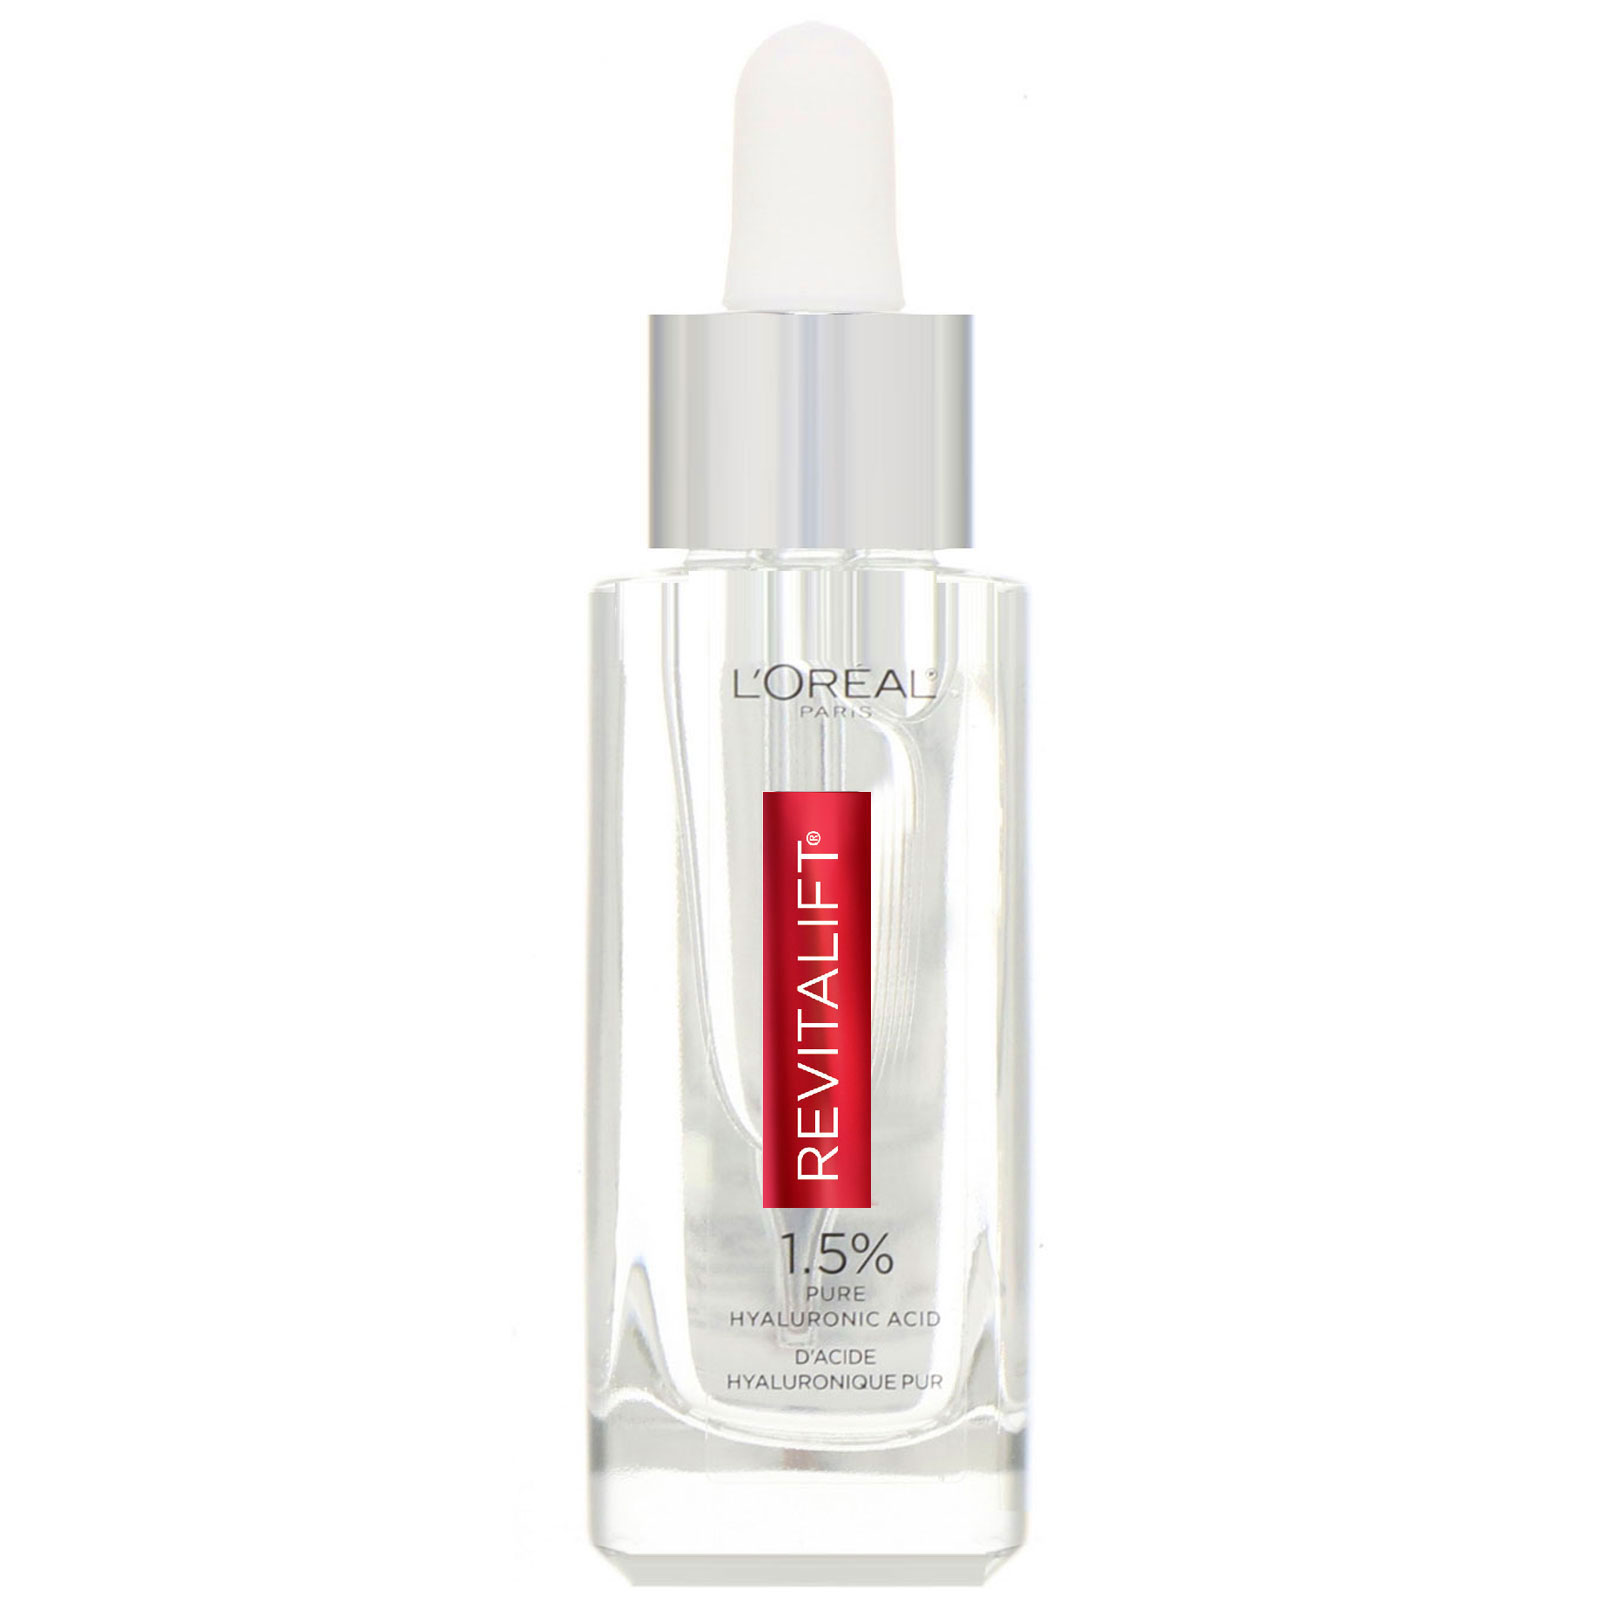 tinh-chat-duong-da-l-oreal-revitalift-1-5-pure-hyaluronic-acid-serum-review-thanh-phan-gia-cong-dung-14